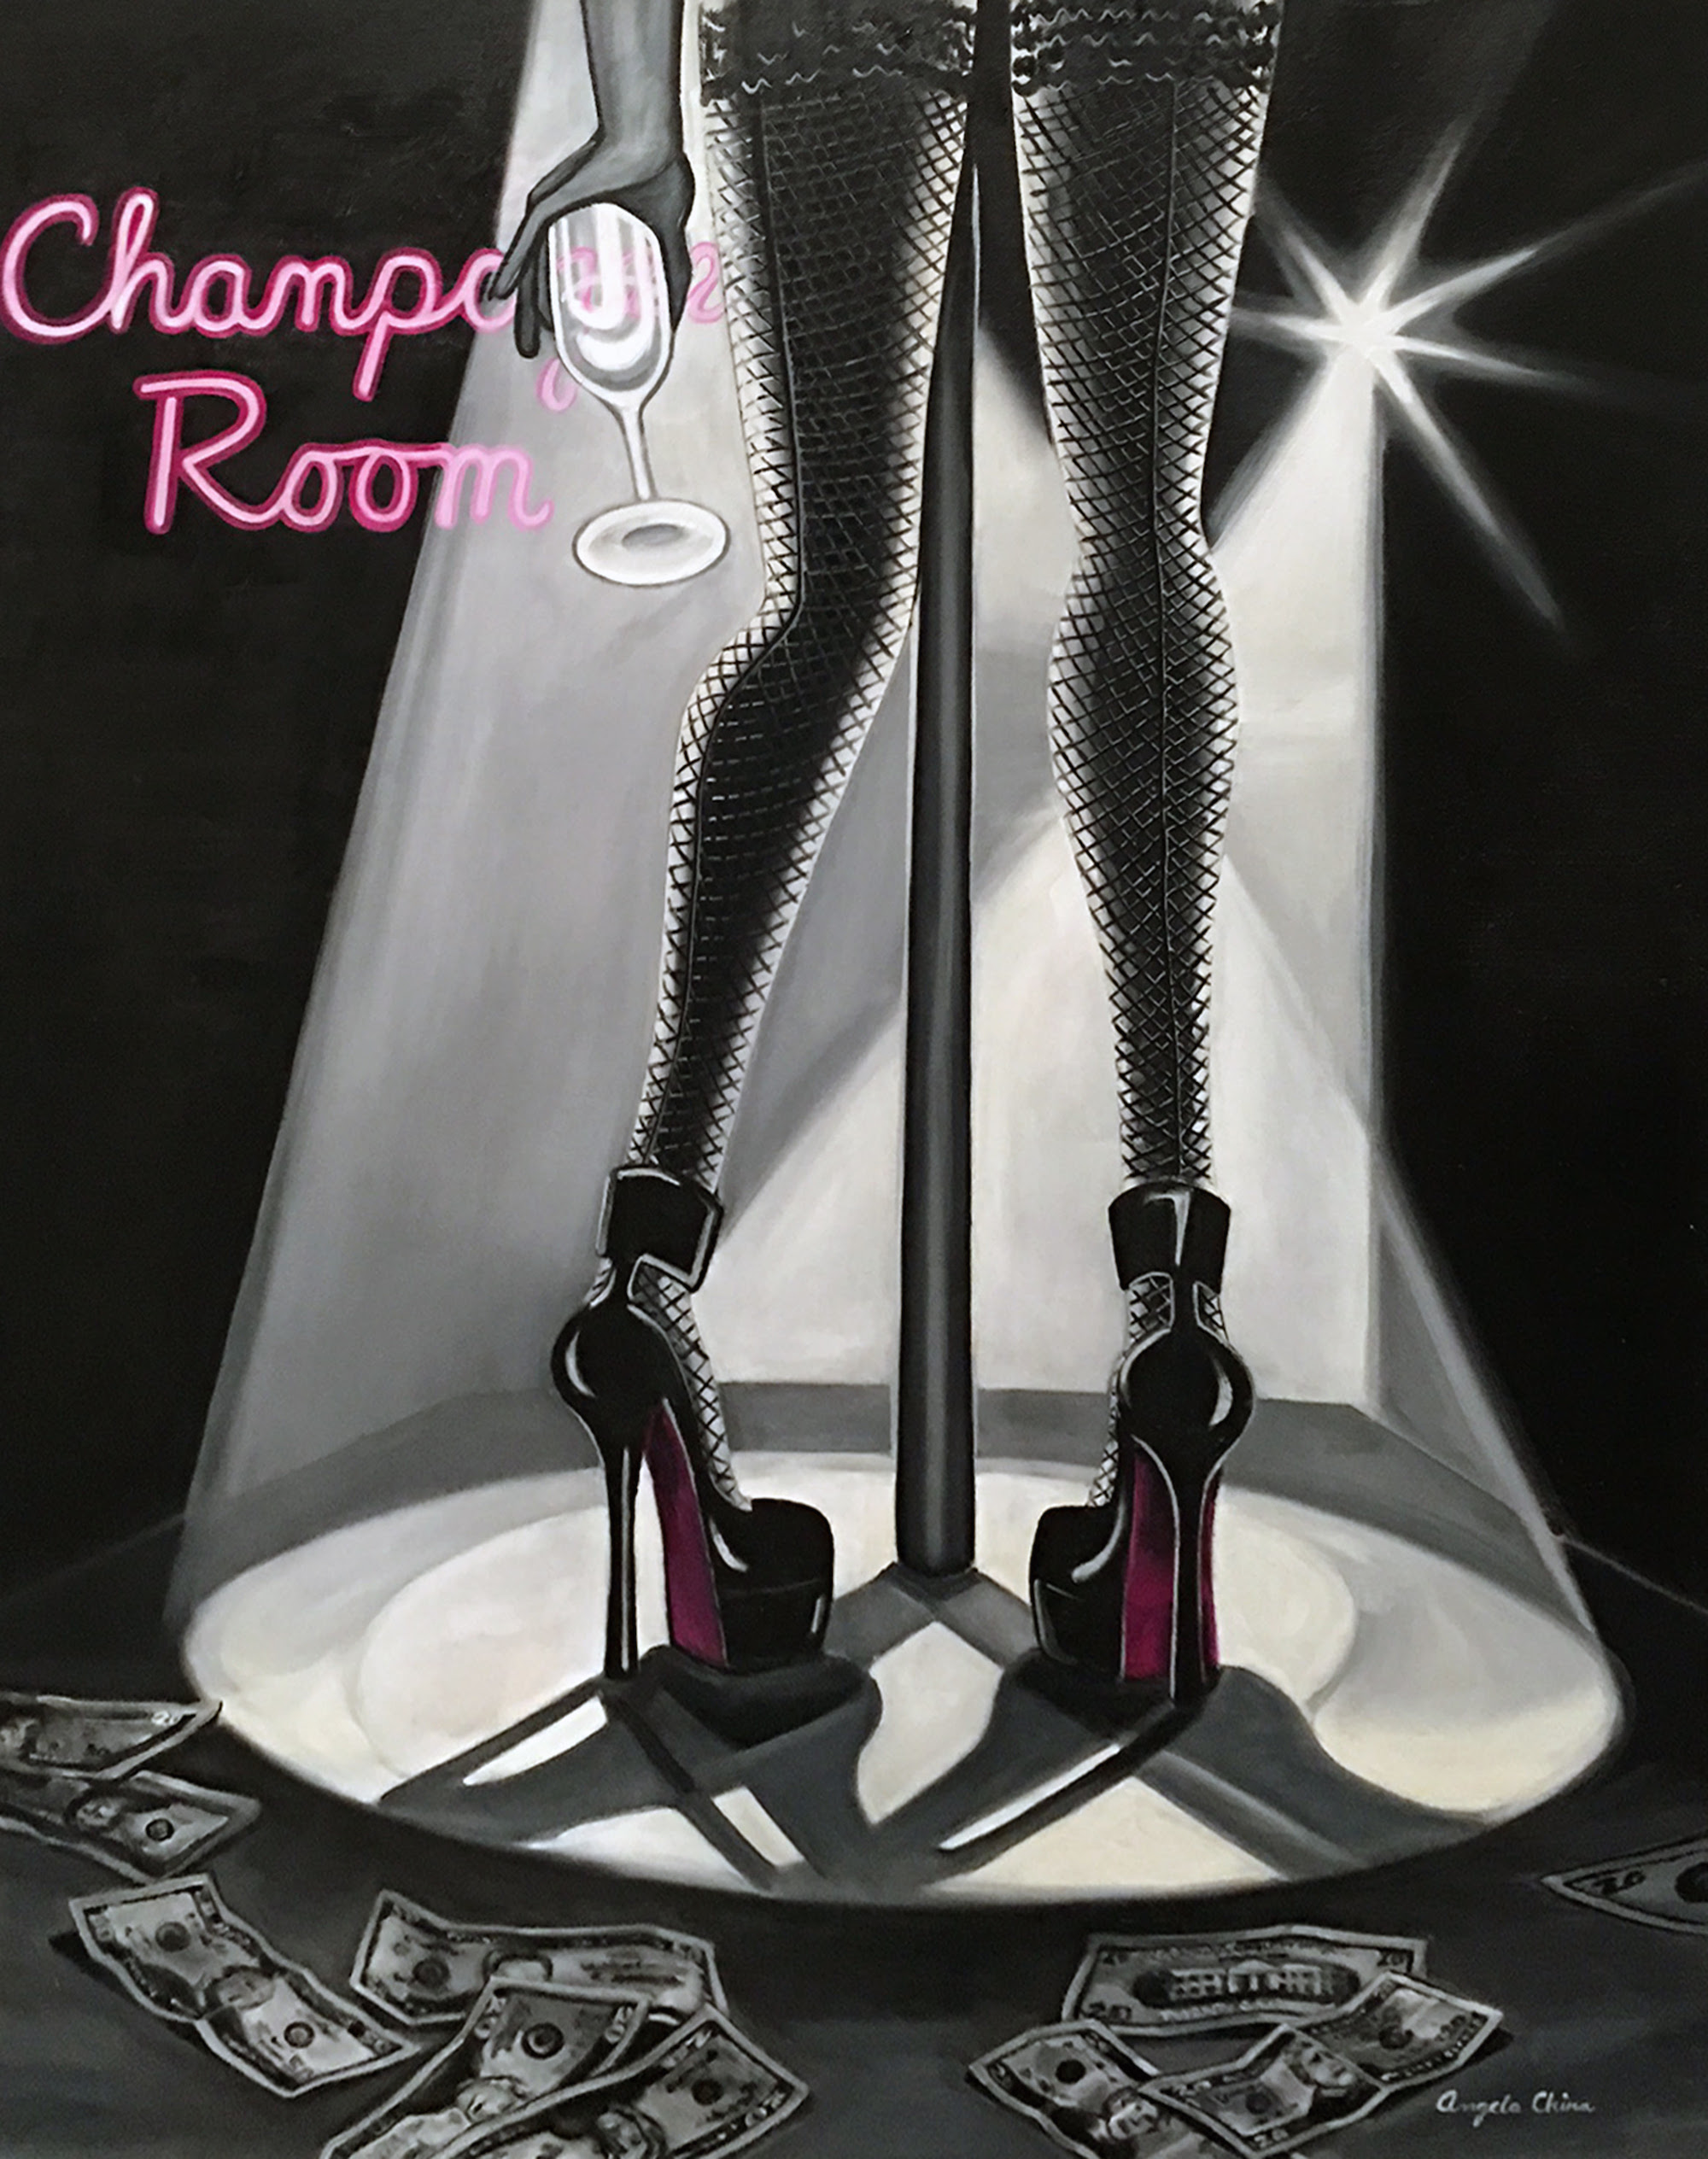 Champagne Room by Angela China